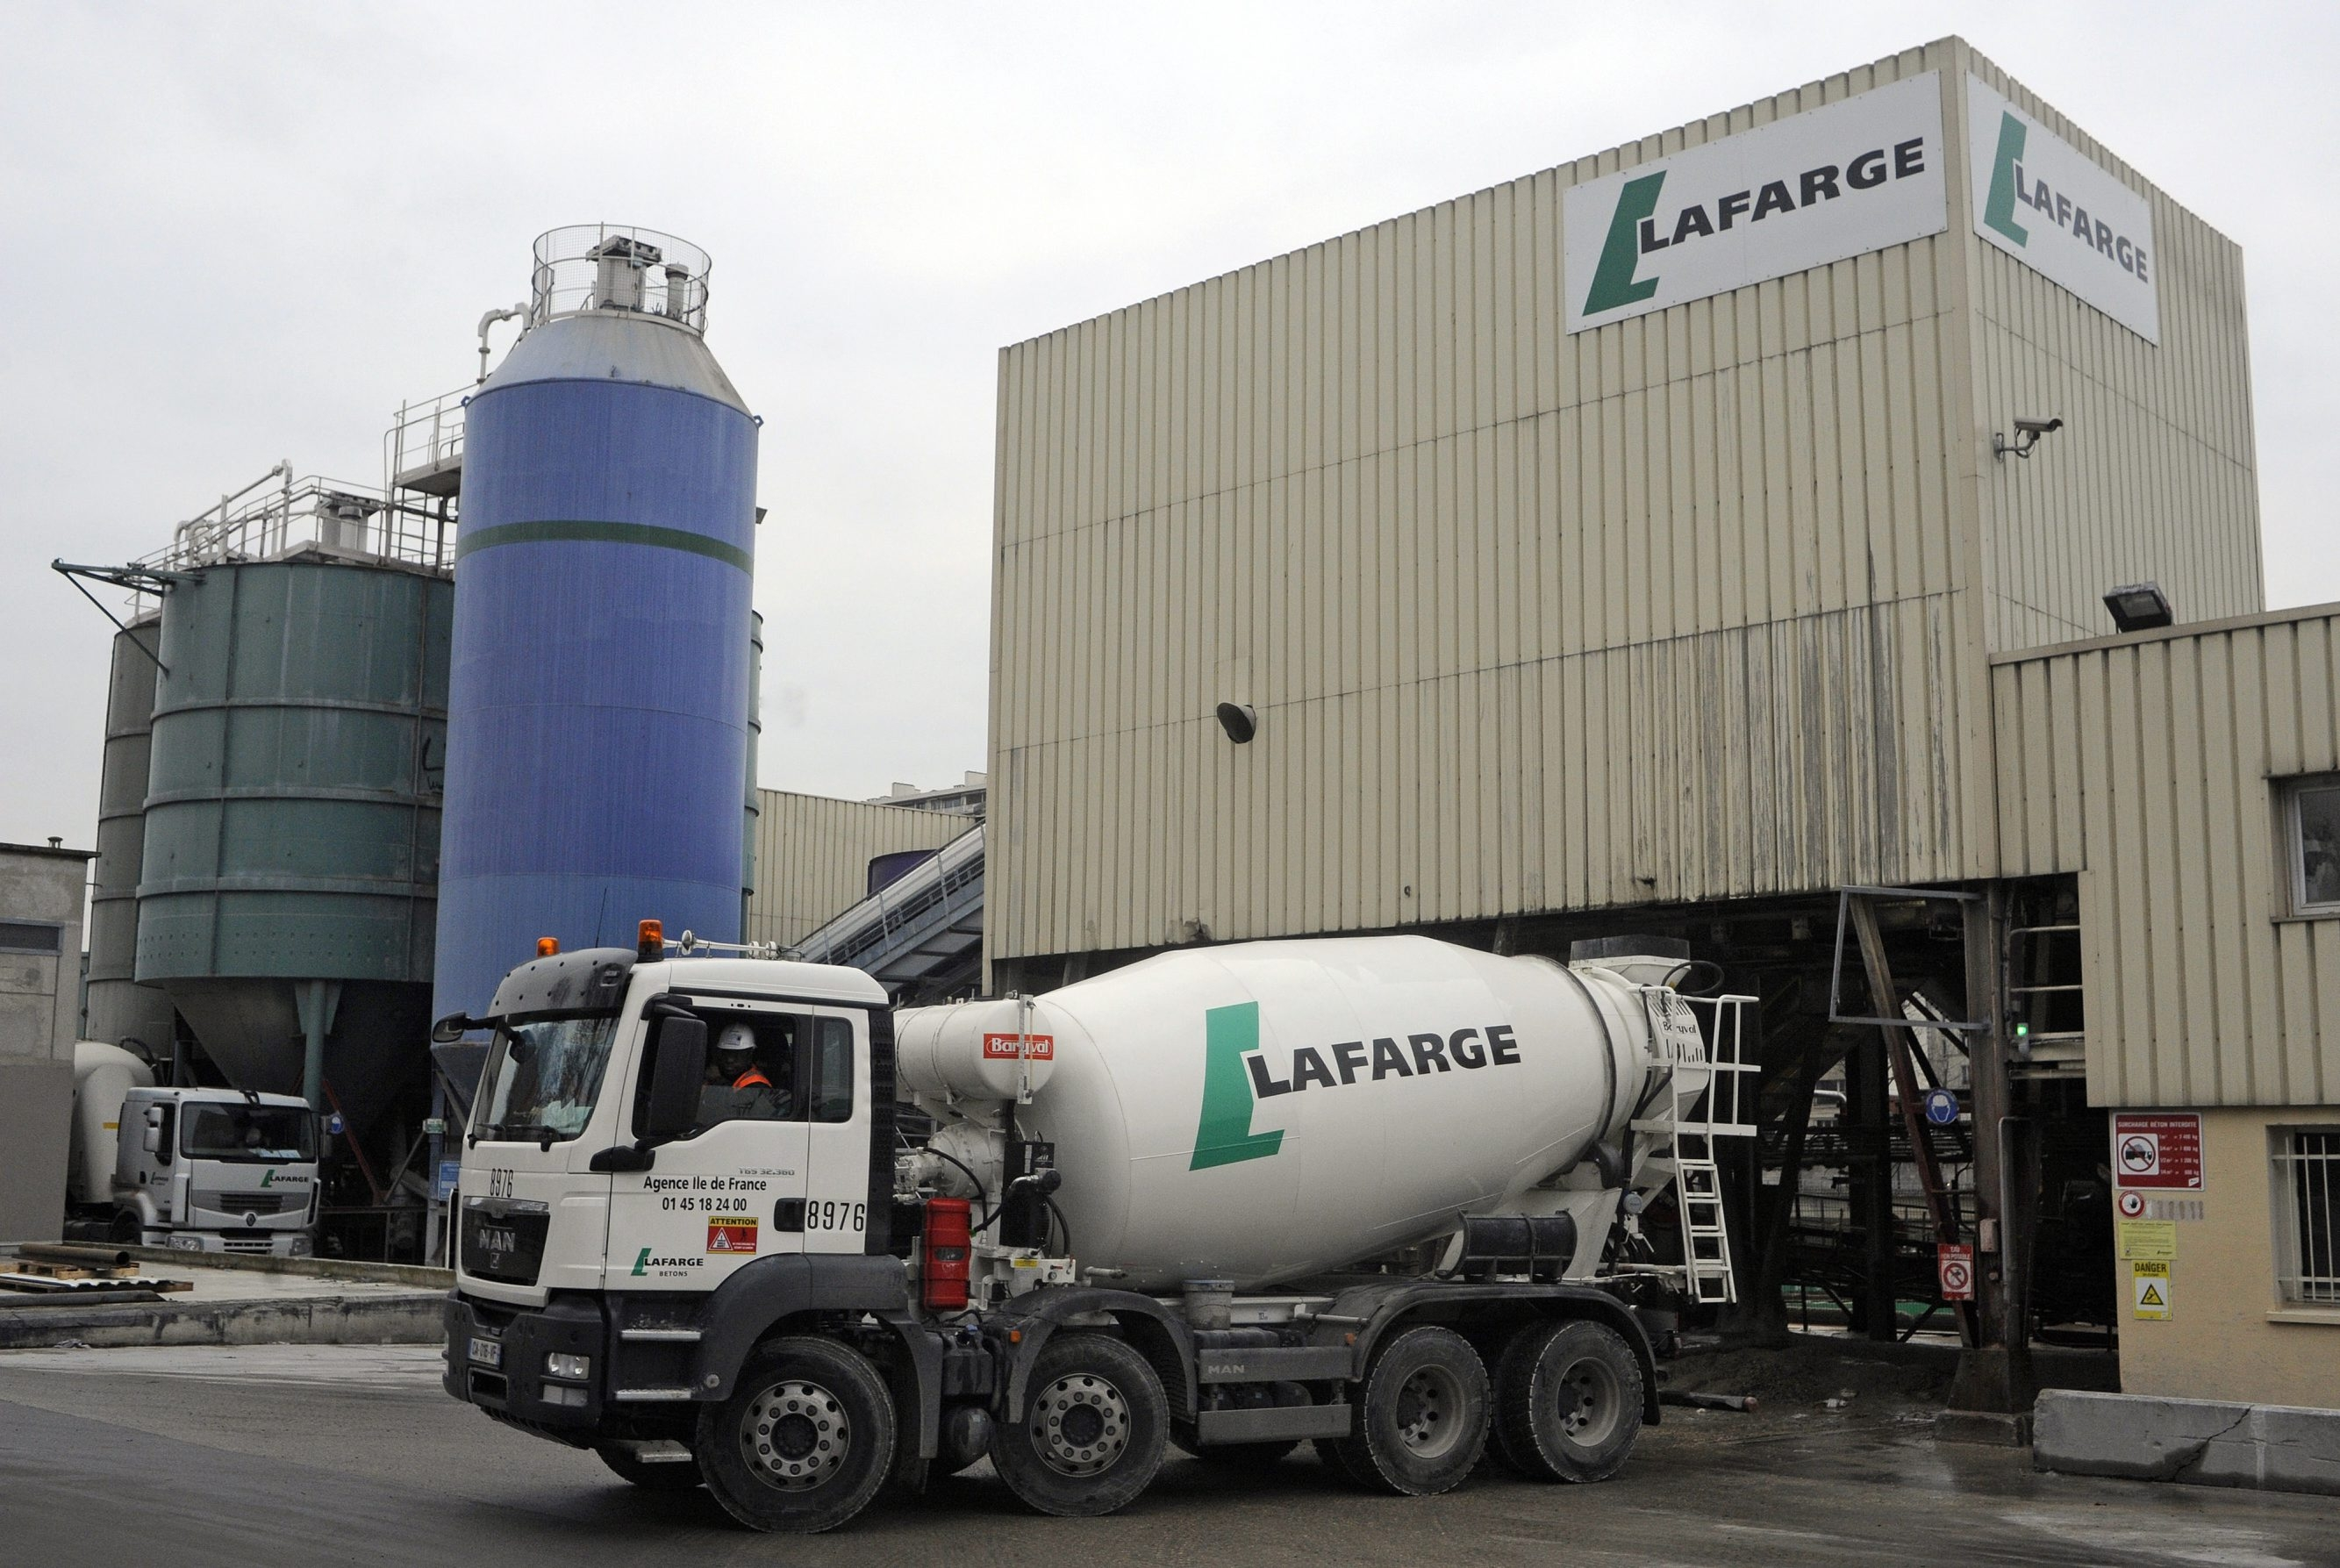 A Lafarge cement mixer truck is driven from the refilling station at Lafarge SA's depot in Paris. Holcim Ltd. and Lafarge SA agreed to a merger to create the world's biggest cement maker with more than $40 billion in sales.